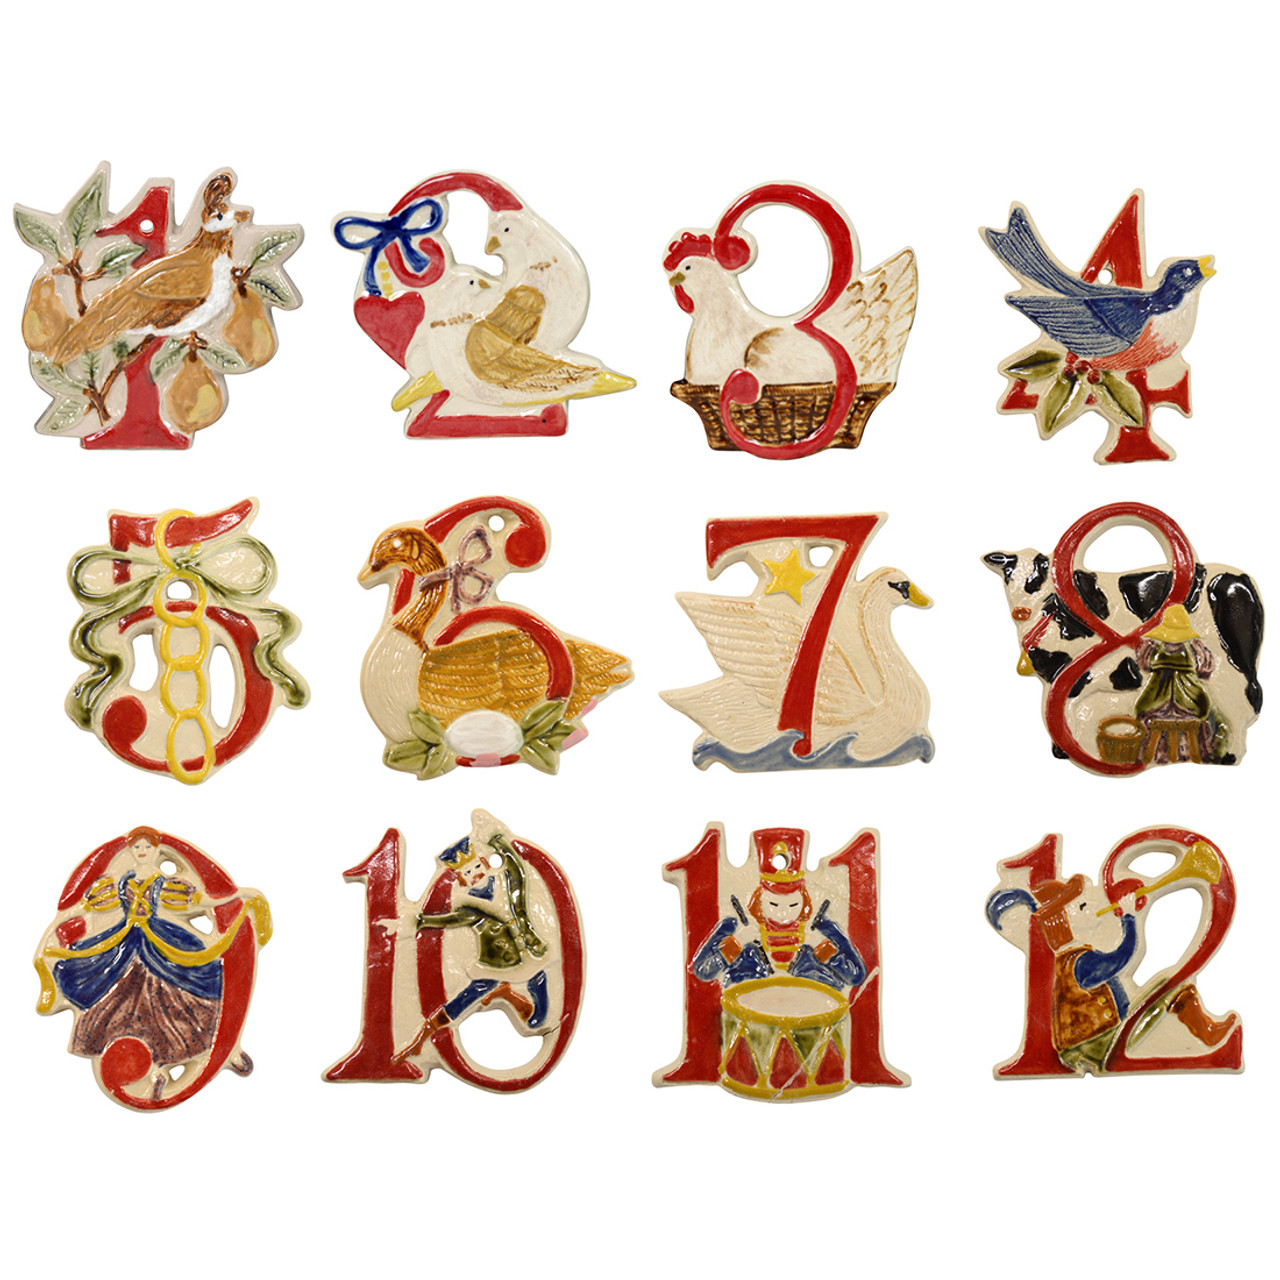 12 days of christmas stonewares 2016 release of 12 days of christmas - 12 Days Of Christmas Ornament Set